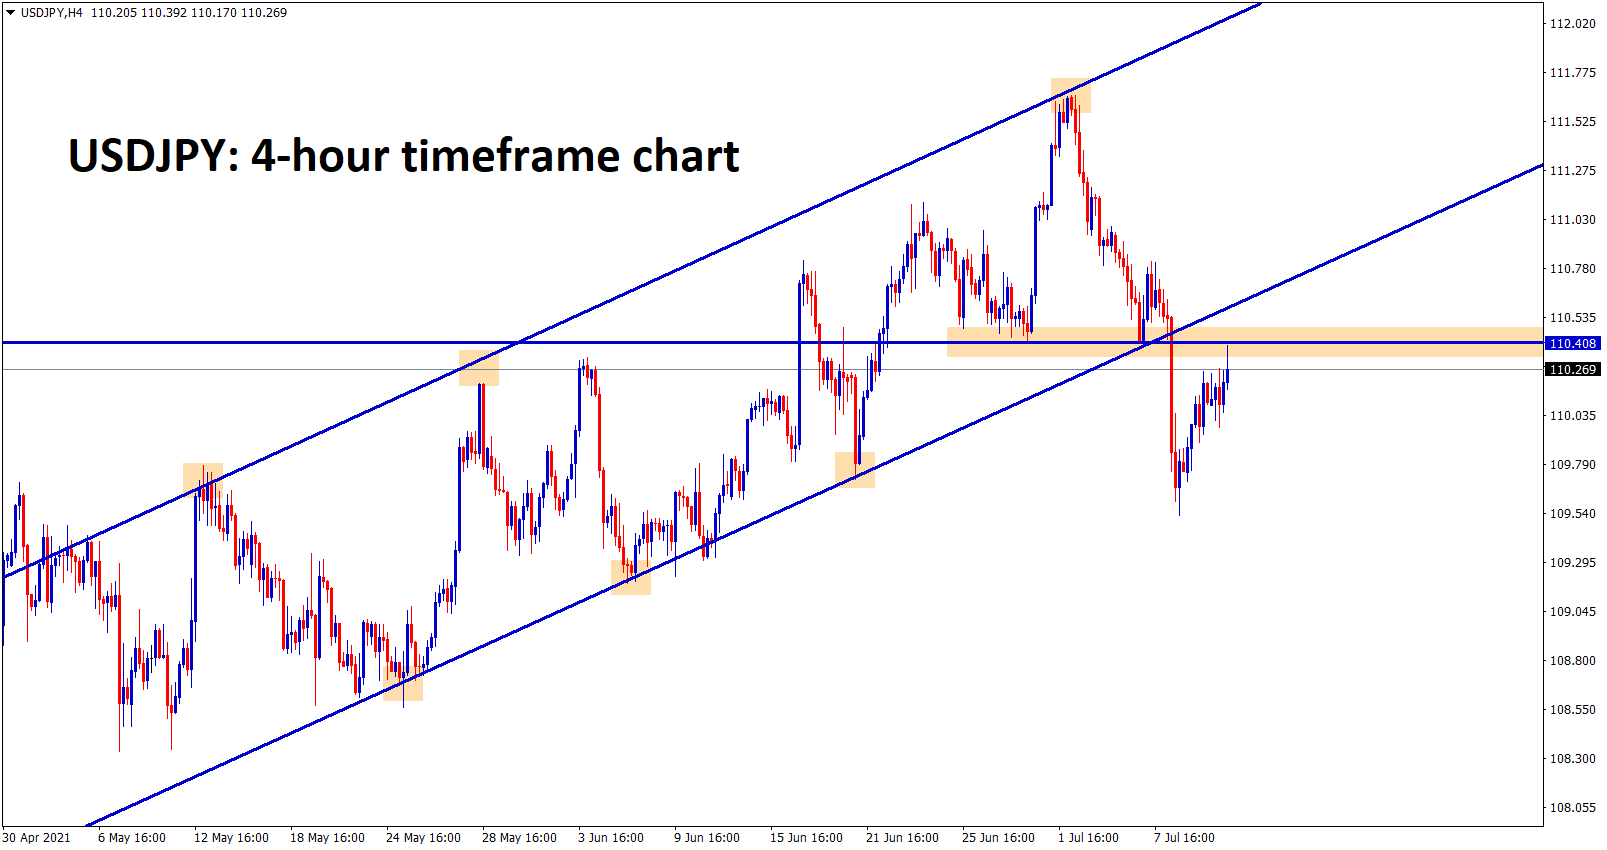 USDJPY has touched the previous broken horizontal support zone